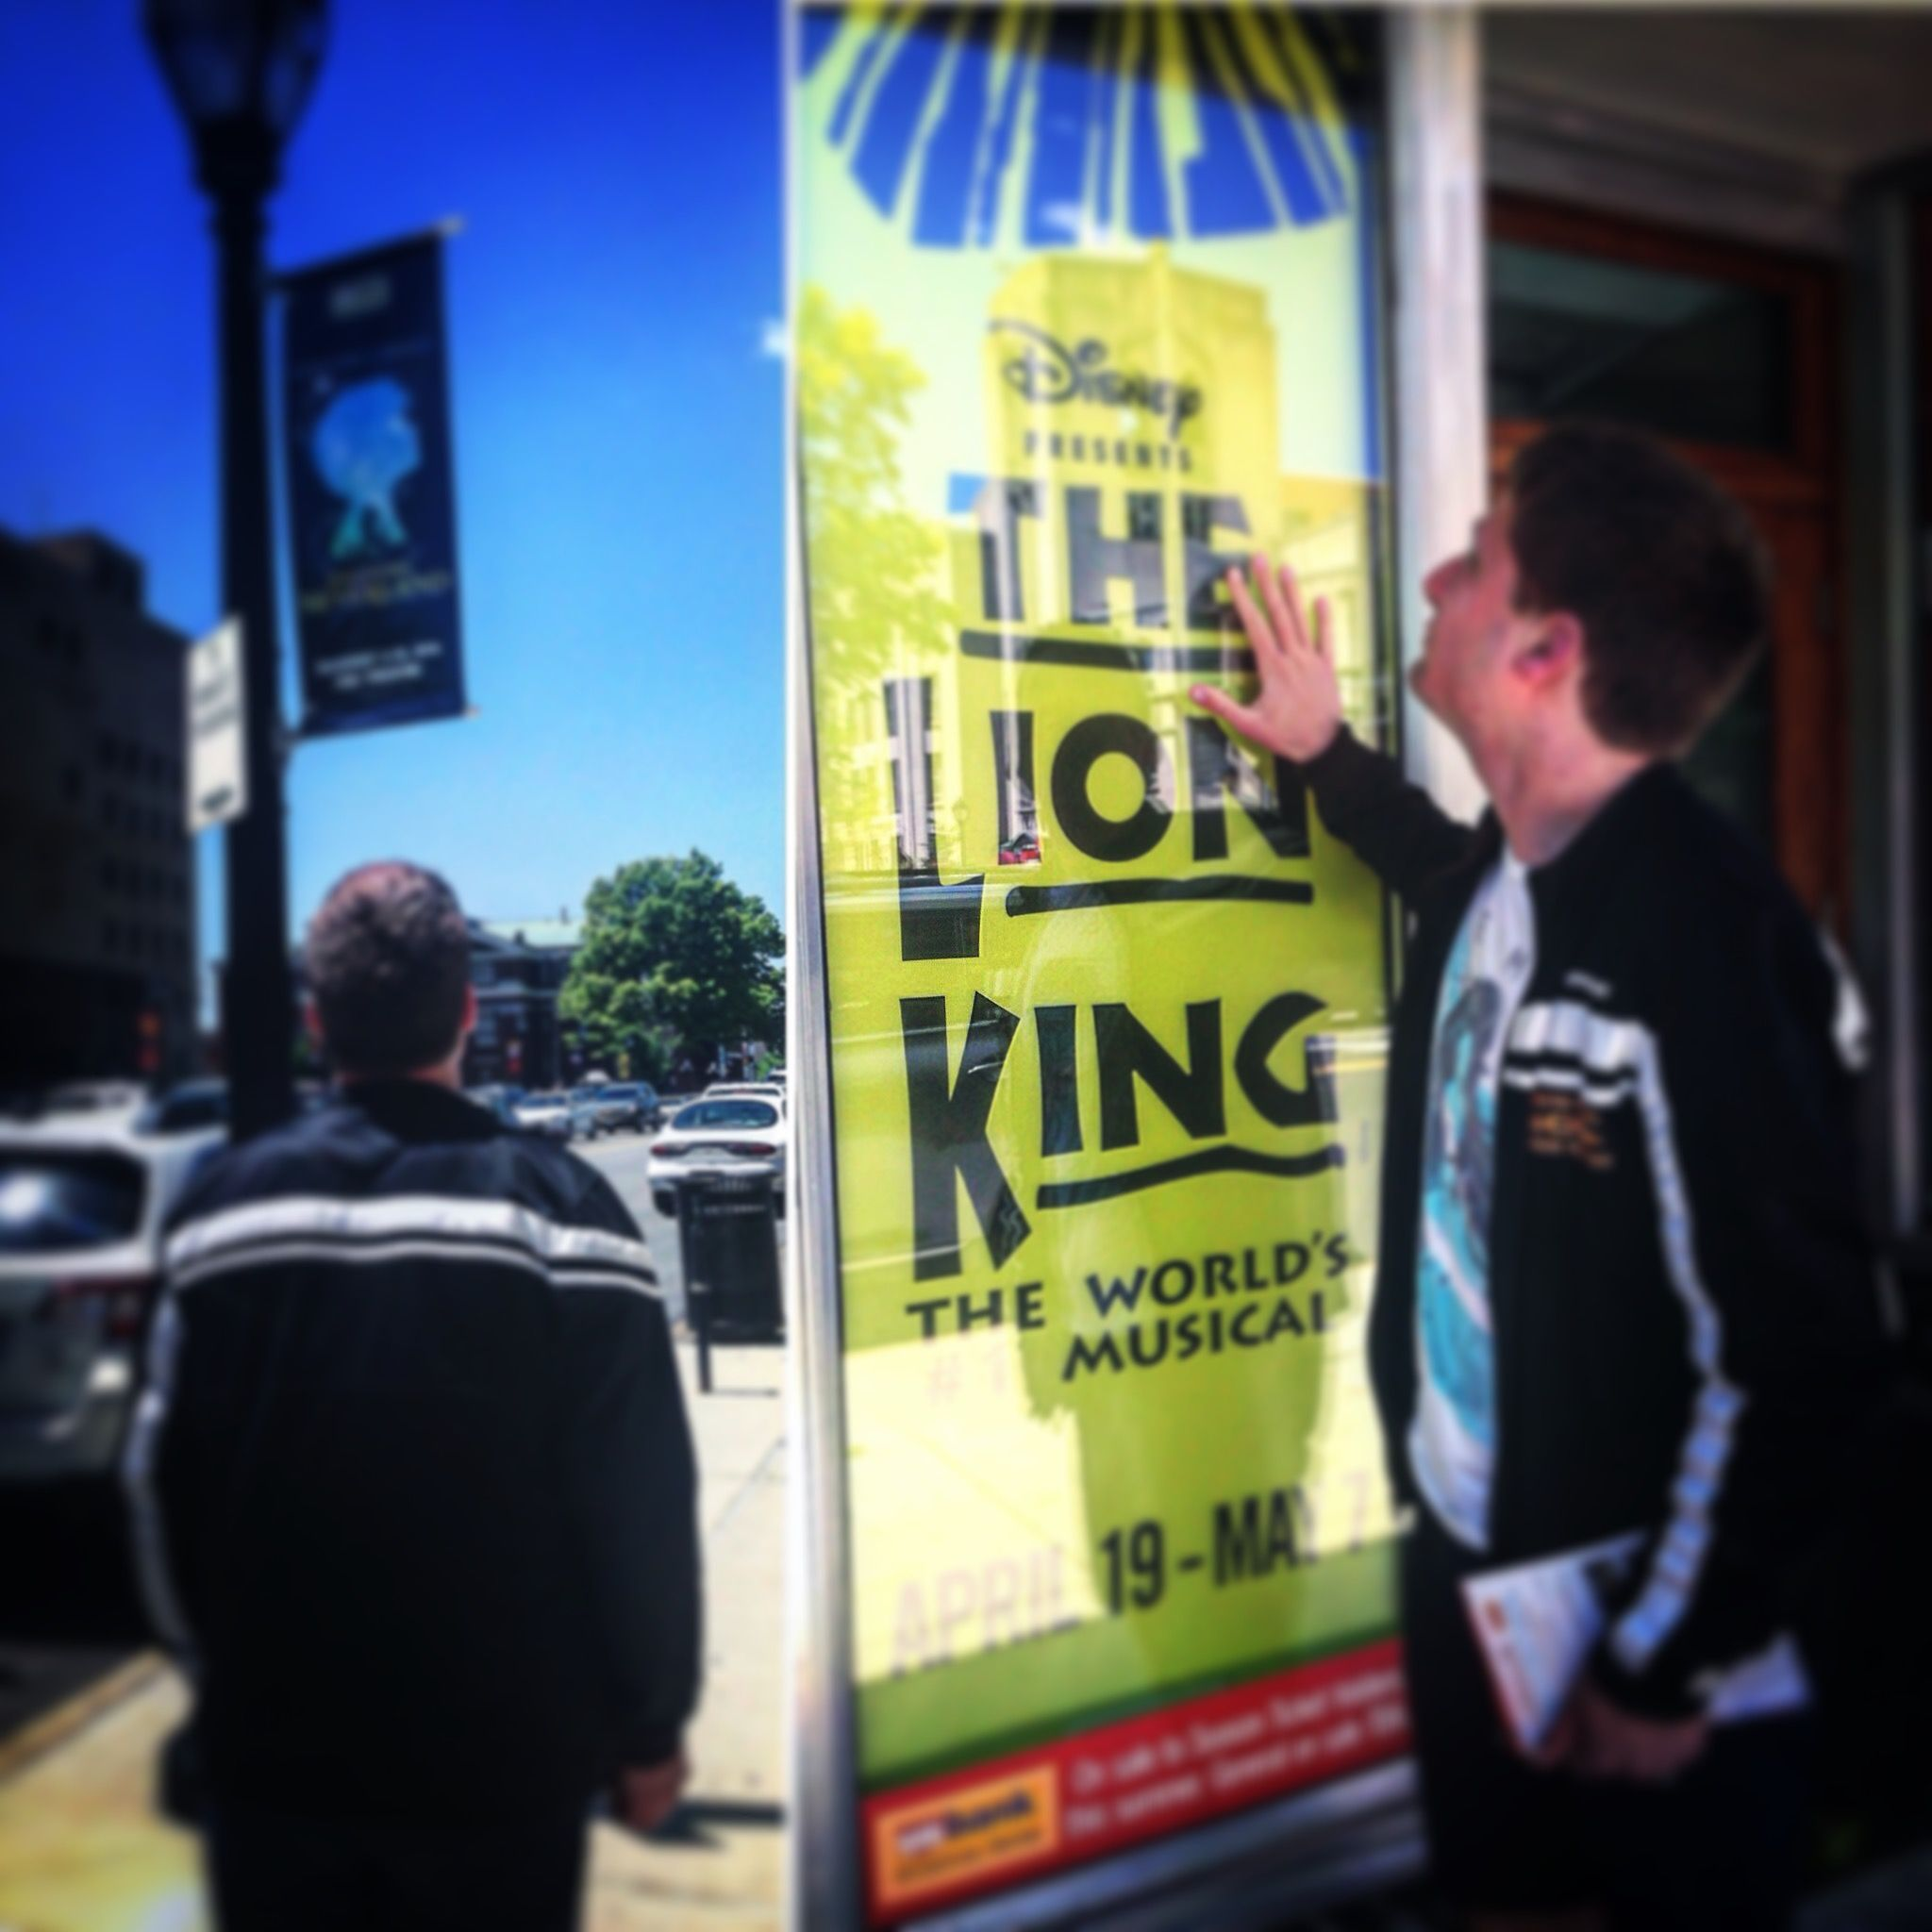 2 greatest Broadway Musical Shows are coming to the Fox Theater this season. Finding Neverland & Disney's The Lion King